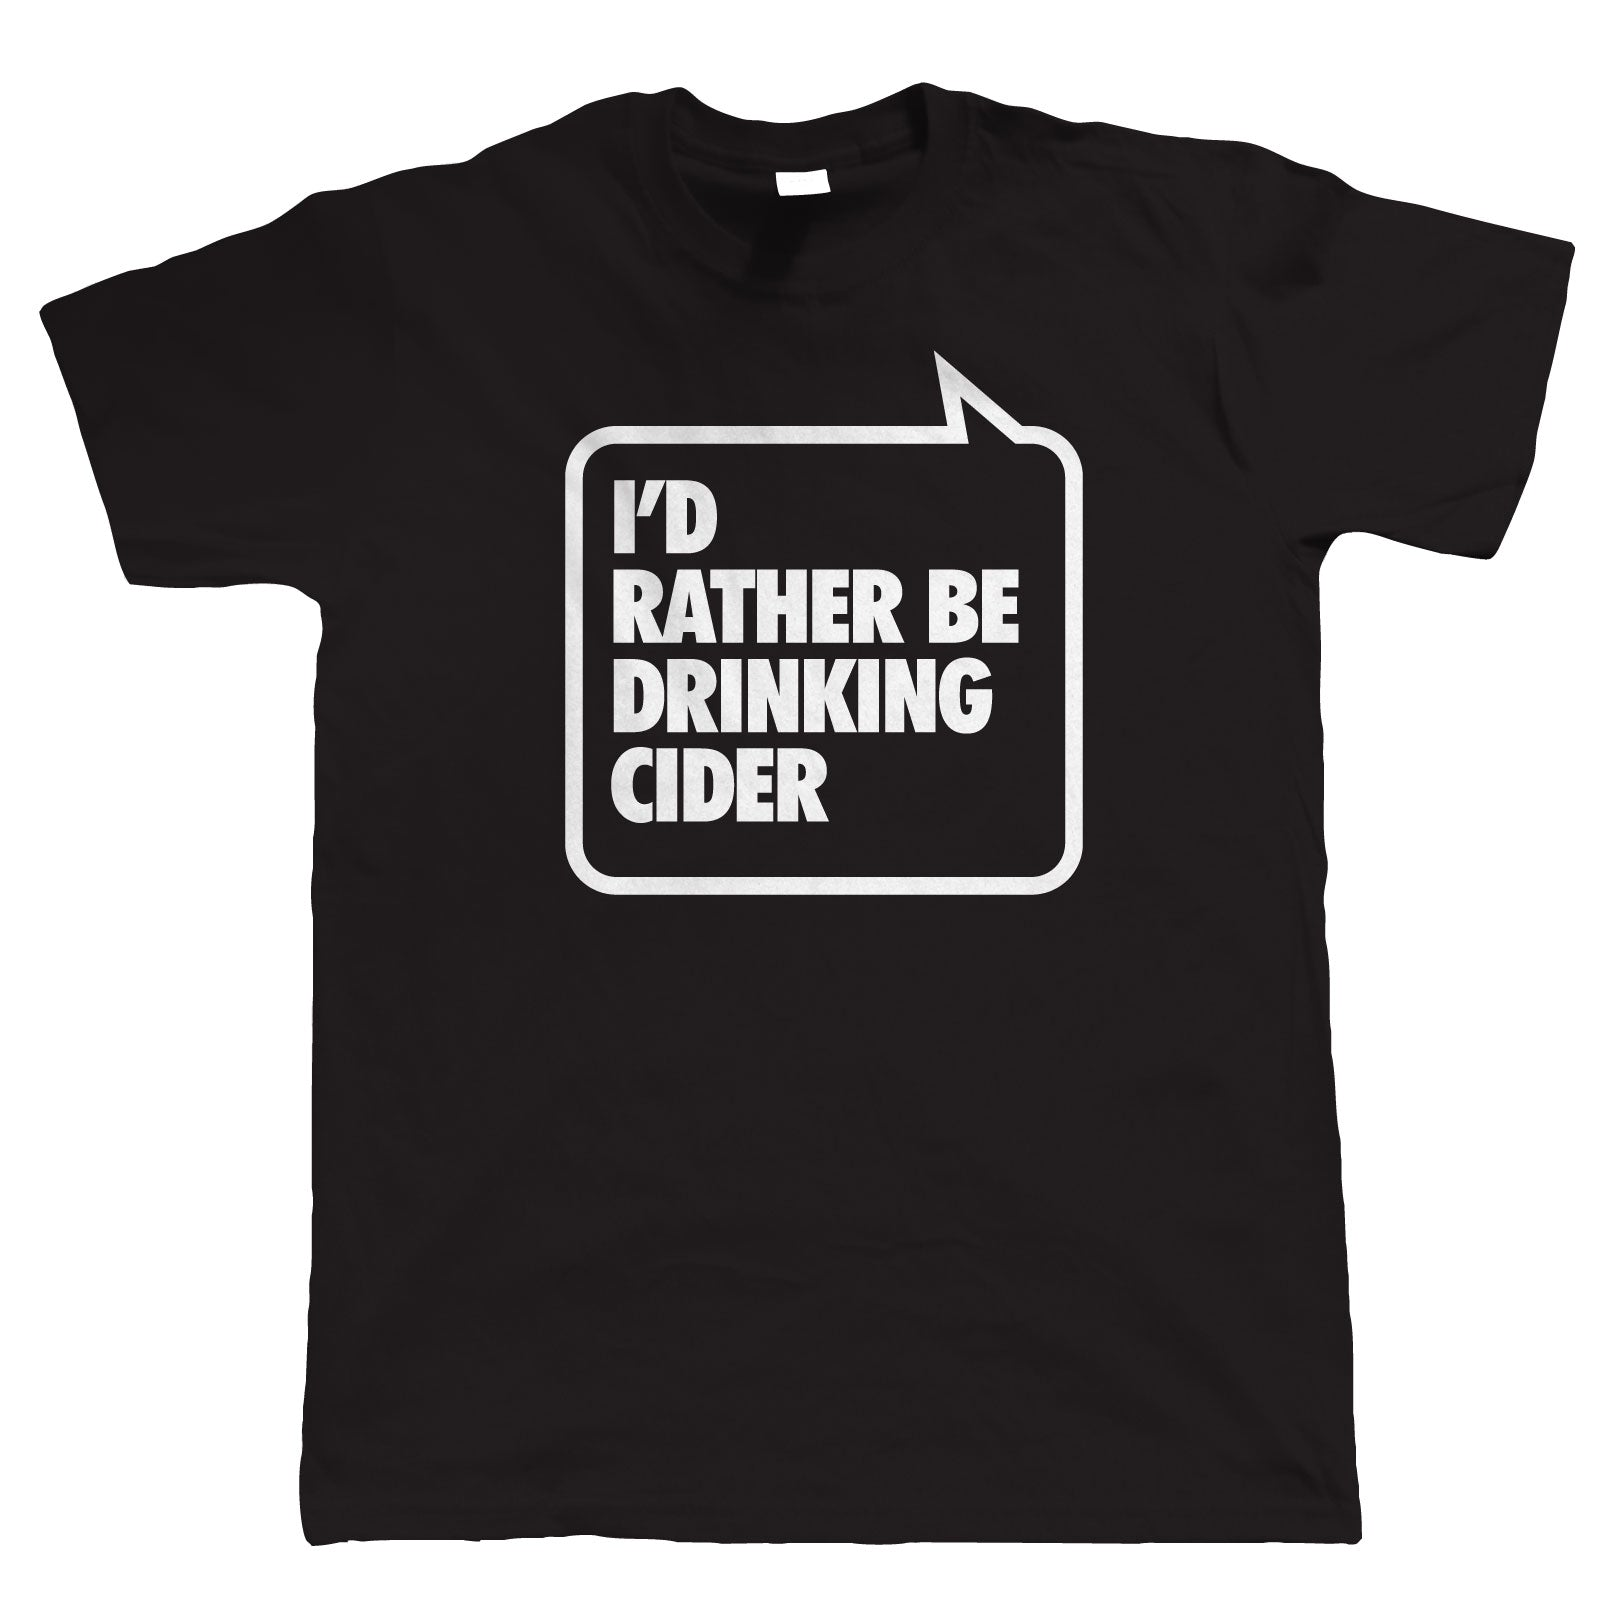 I'd Rather be Drinking Cider, Mens Funny Party T Shirt